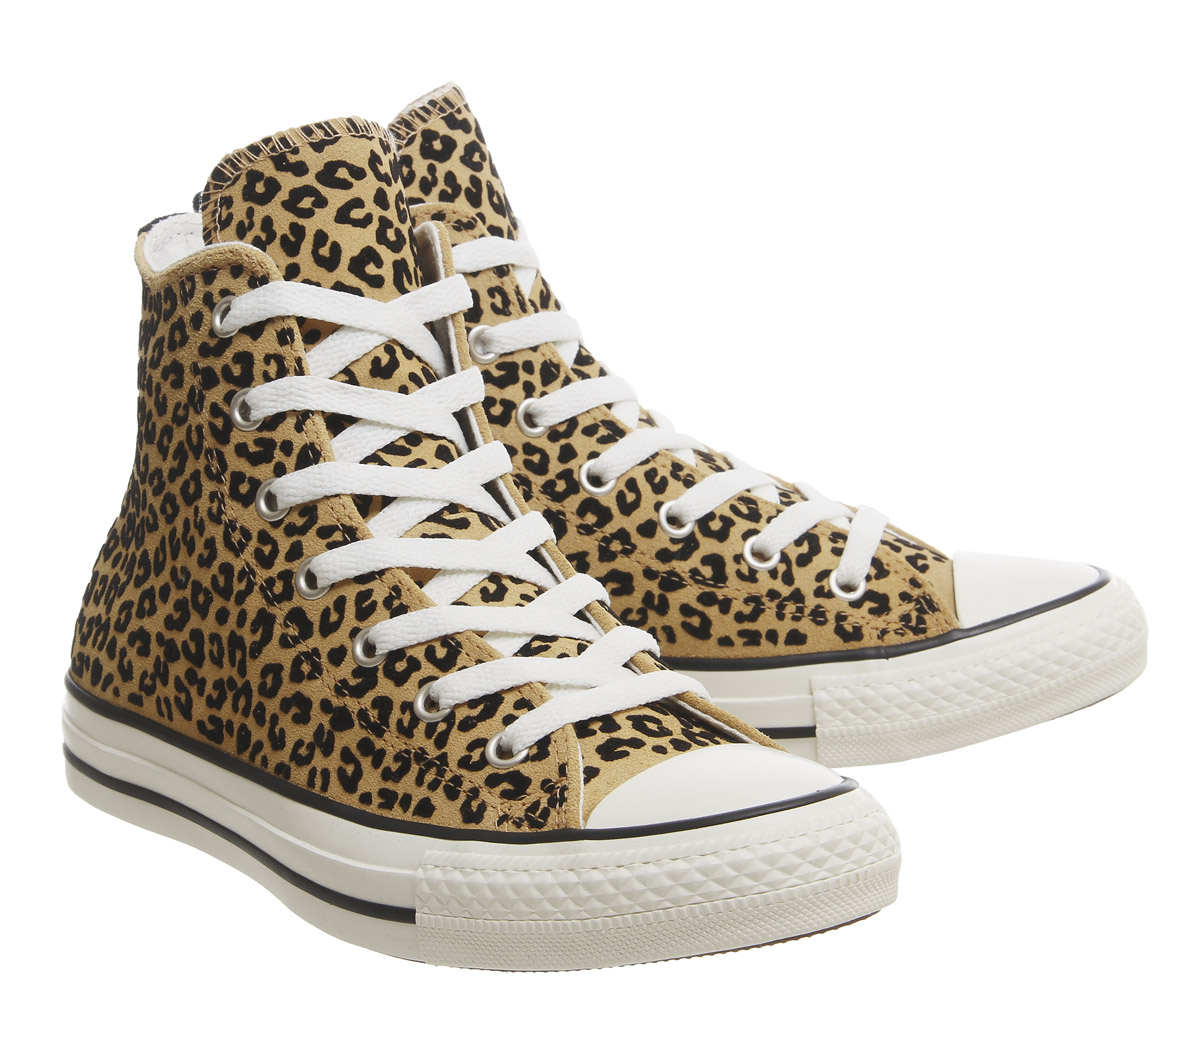 office-converse-leopard-hi-trainers